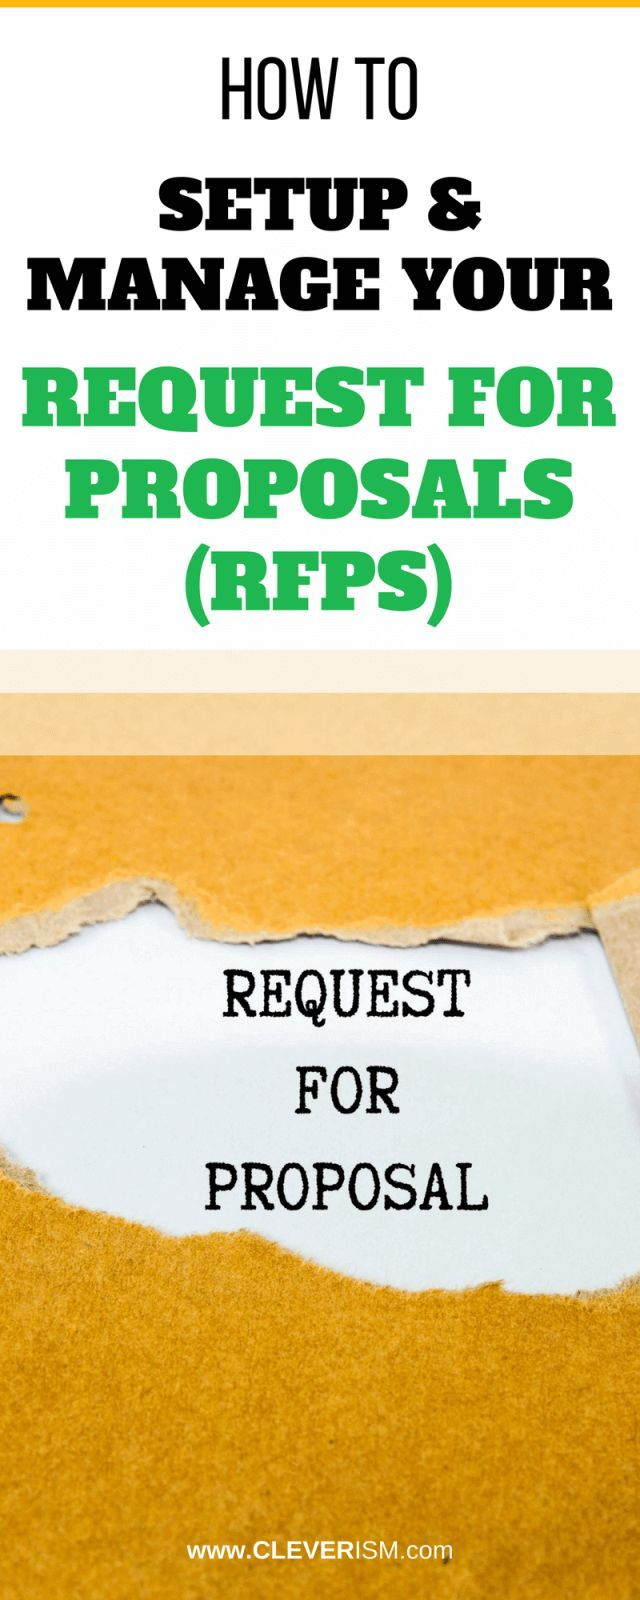 How To Setup And Manage Your Request For Proposals (RFPs) | The Best